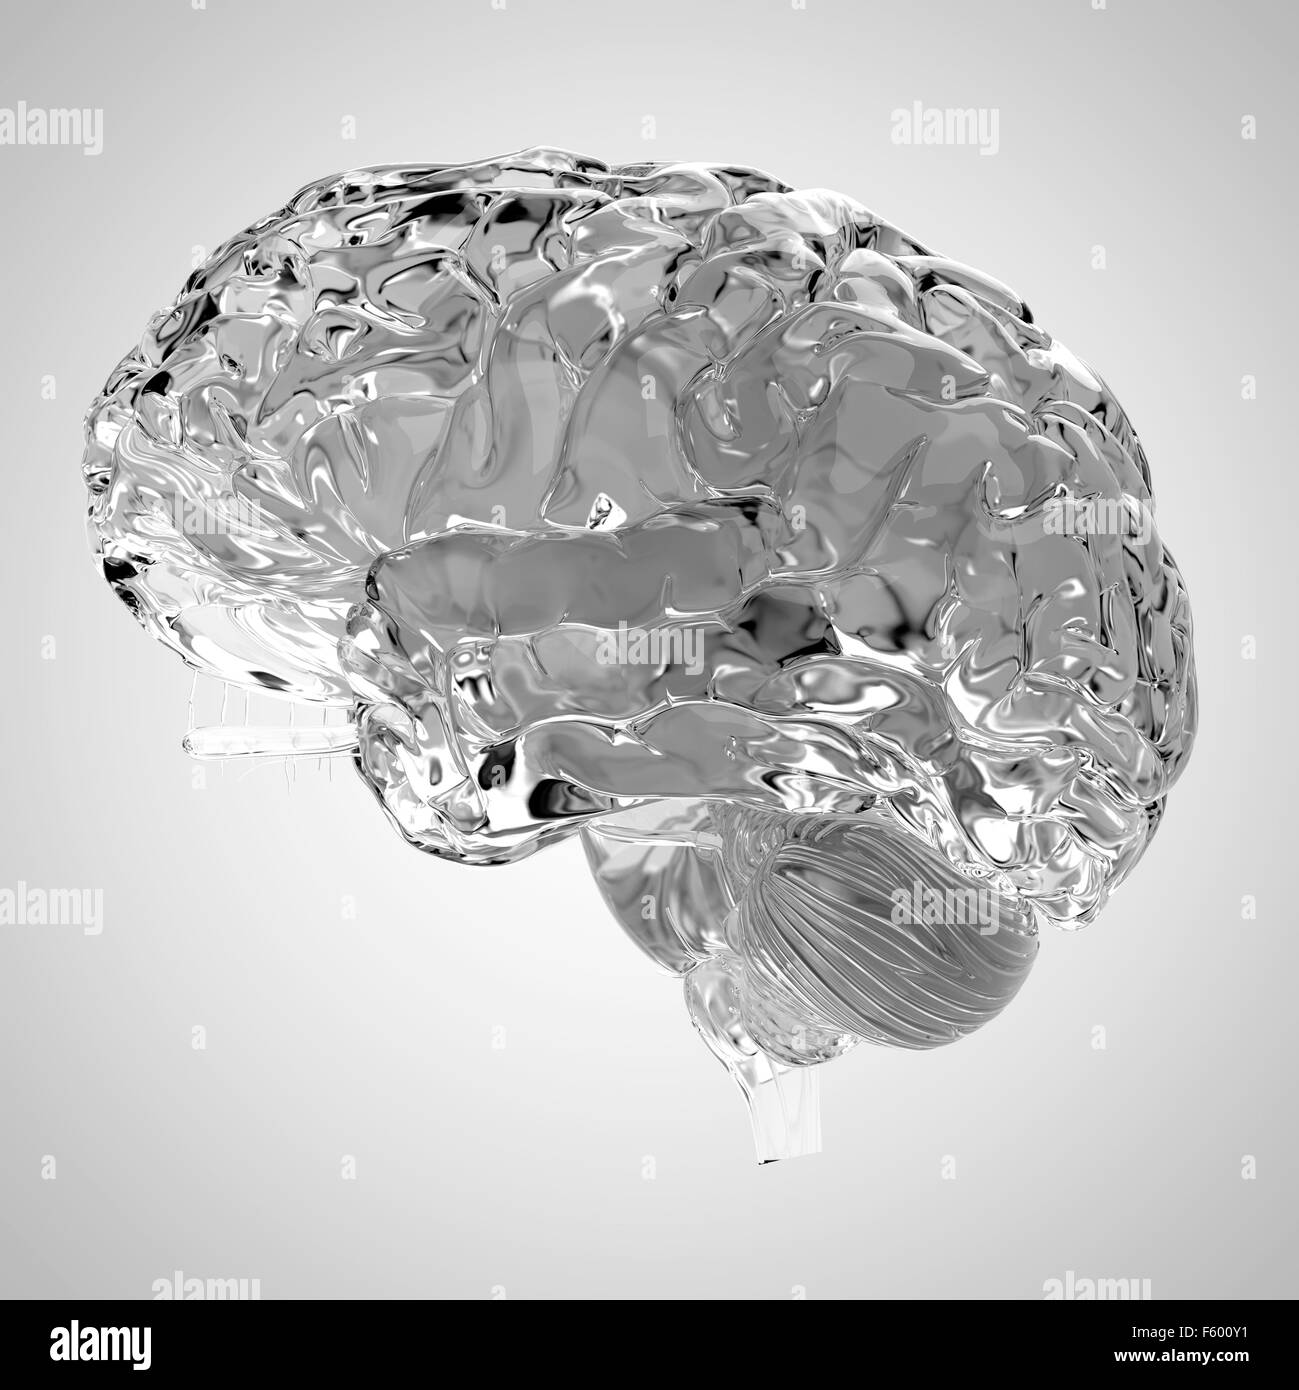 medically accurate illustration of a glas brain - Stock Image